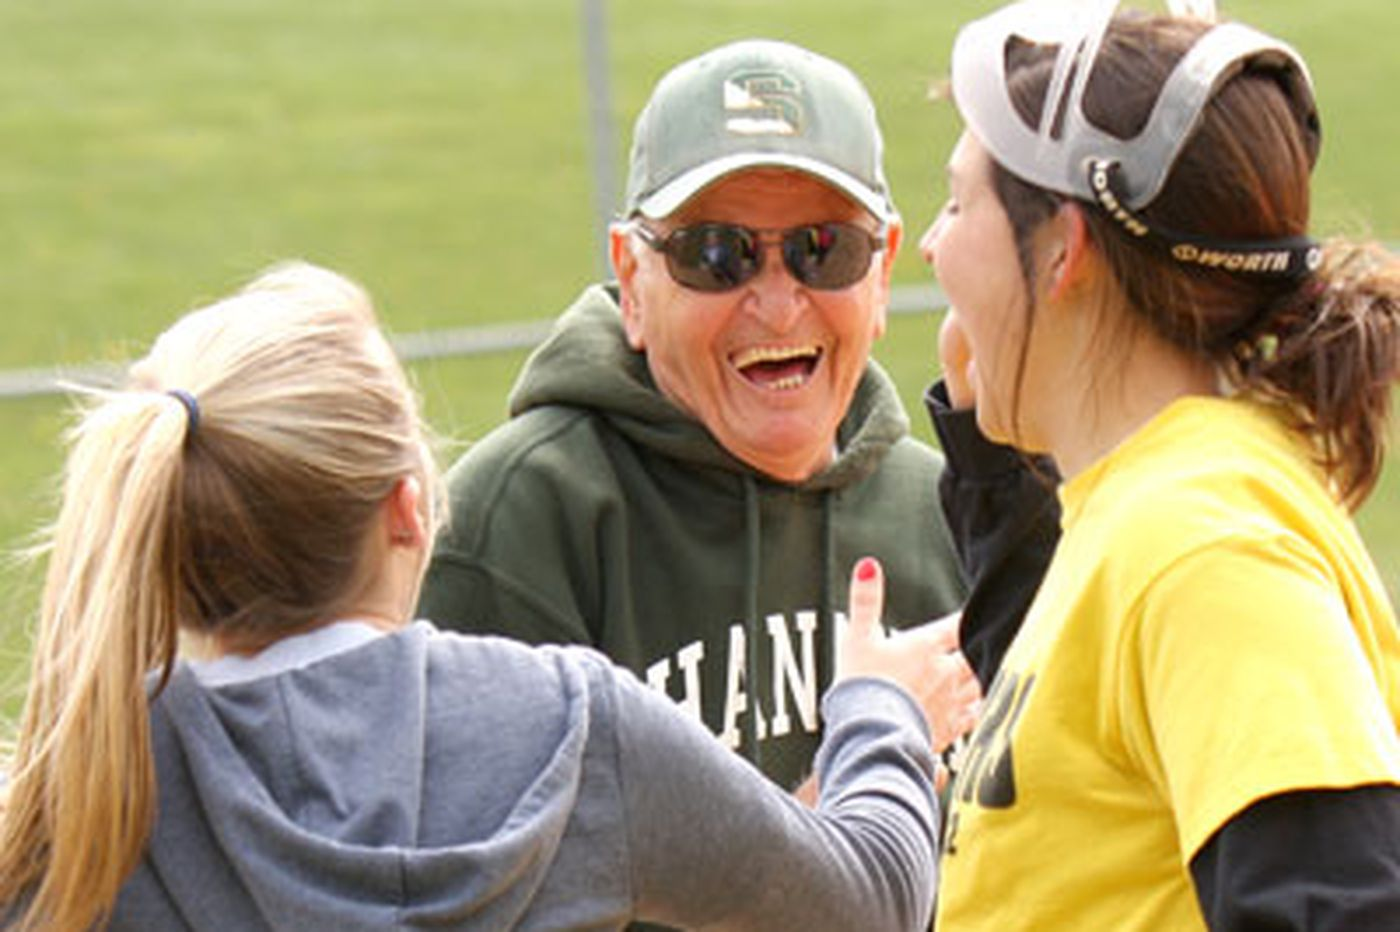 The joy of softball coaching